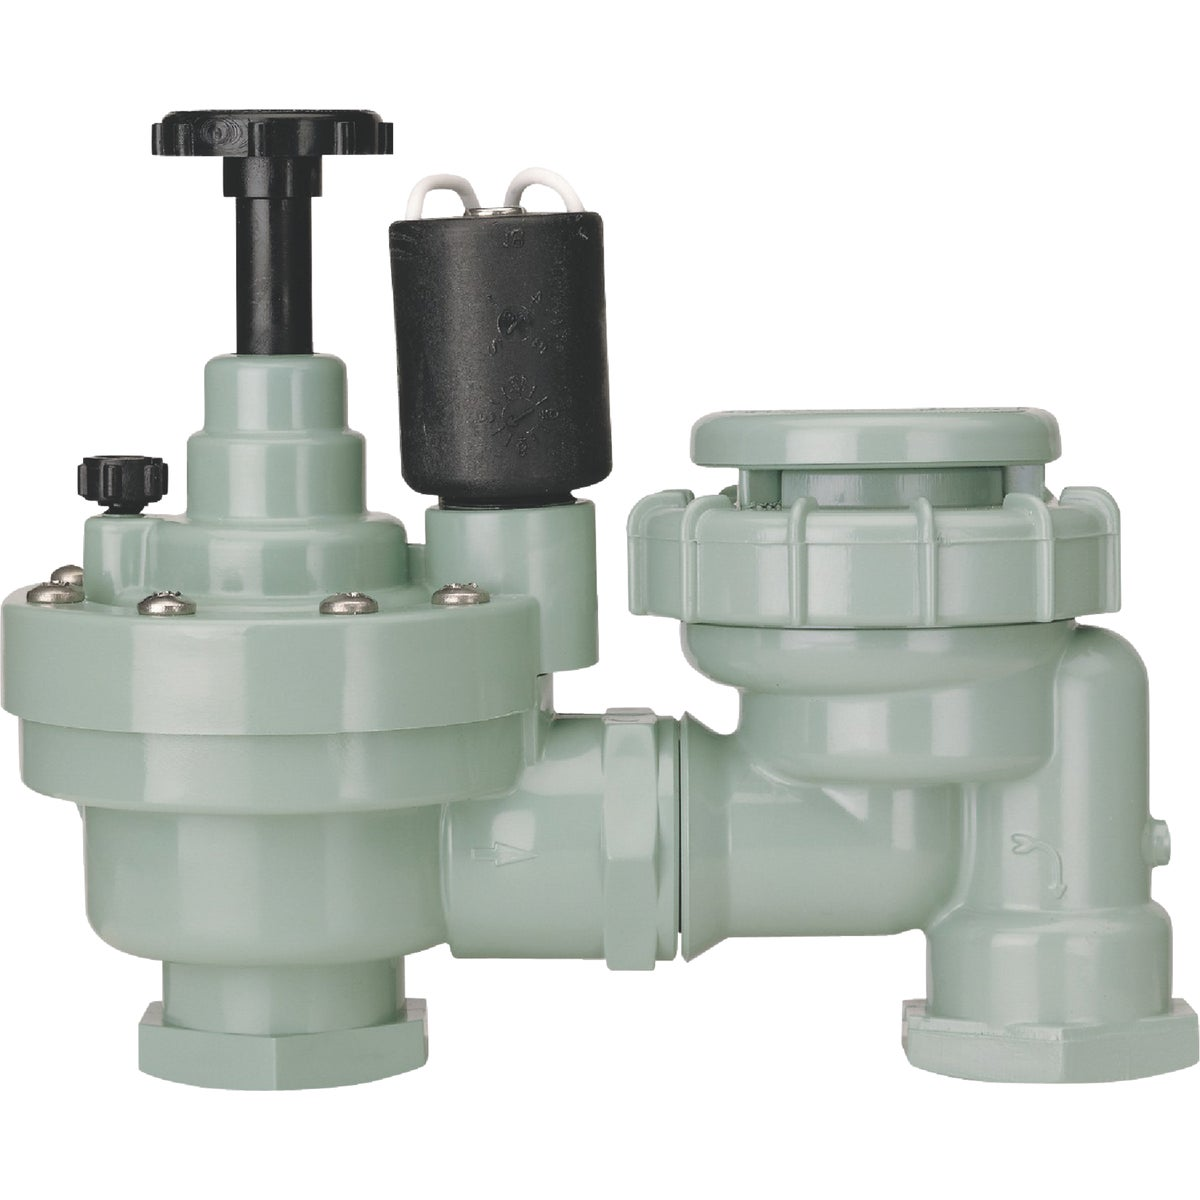 "3/4"" ANTI-SIPHON VALVE - 54000 by Toro/elect Appl Ordr"